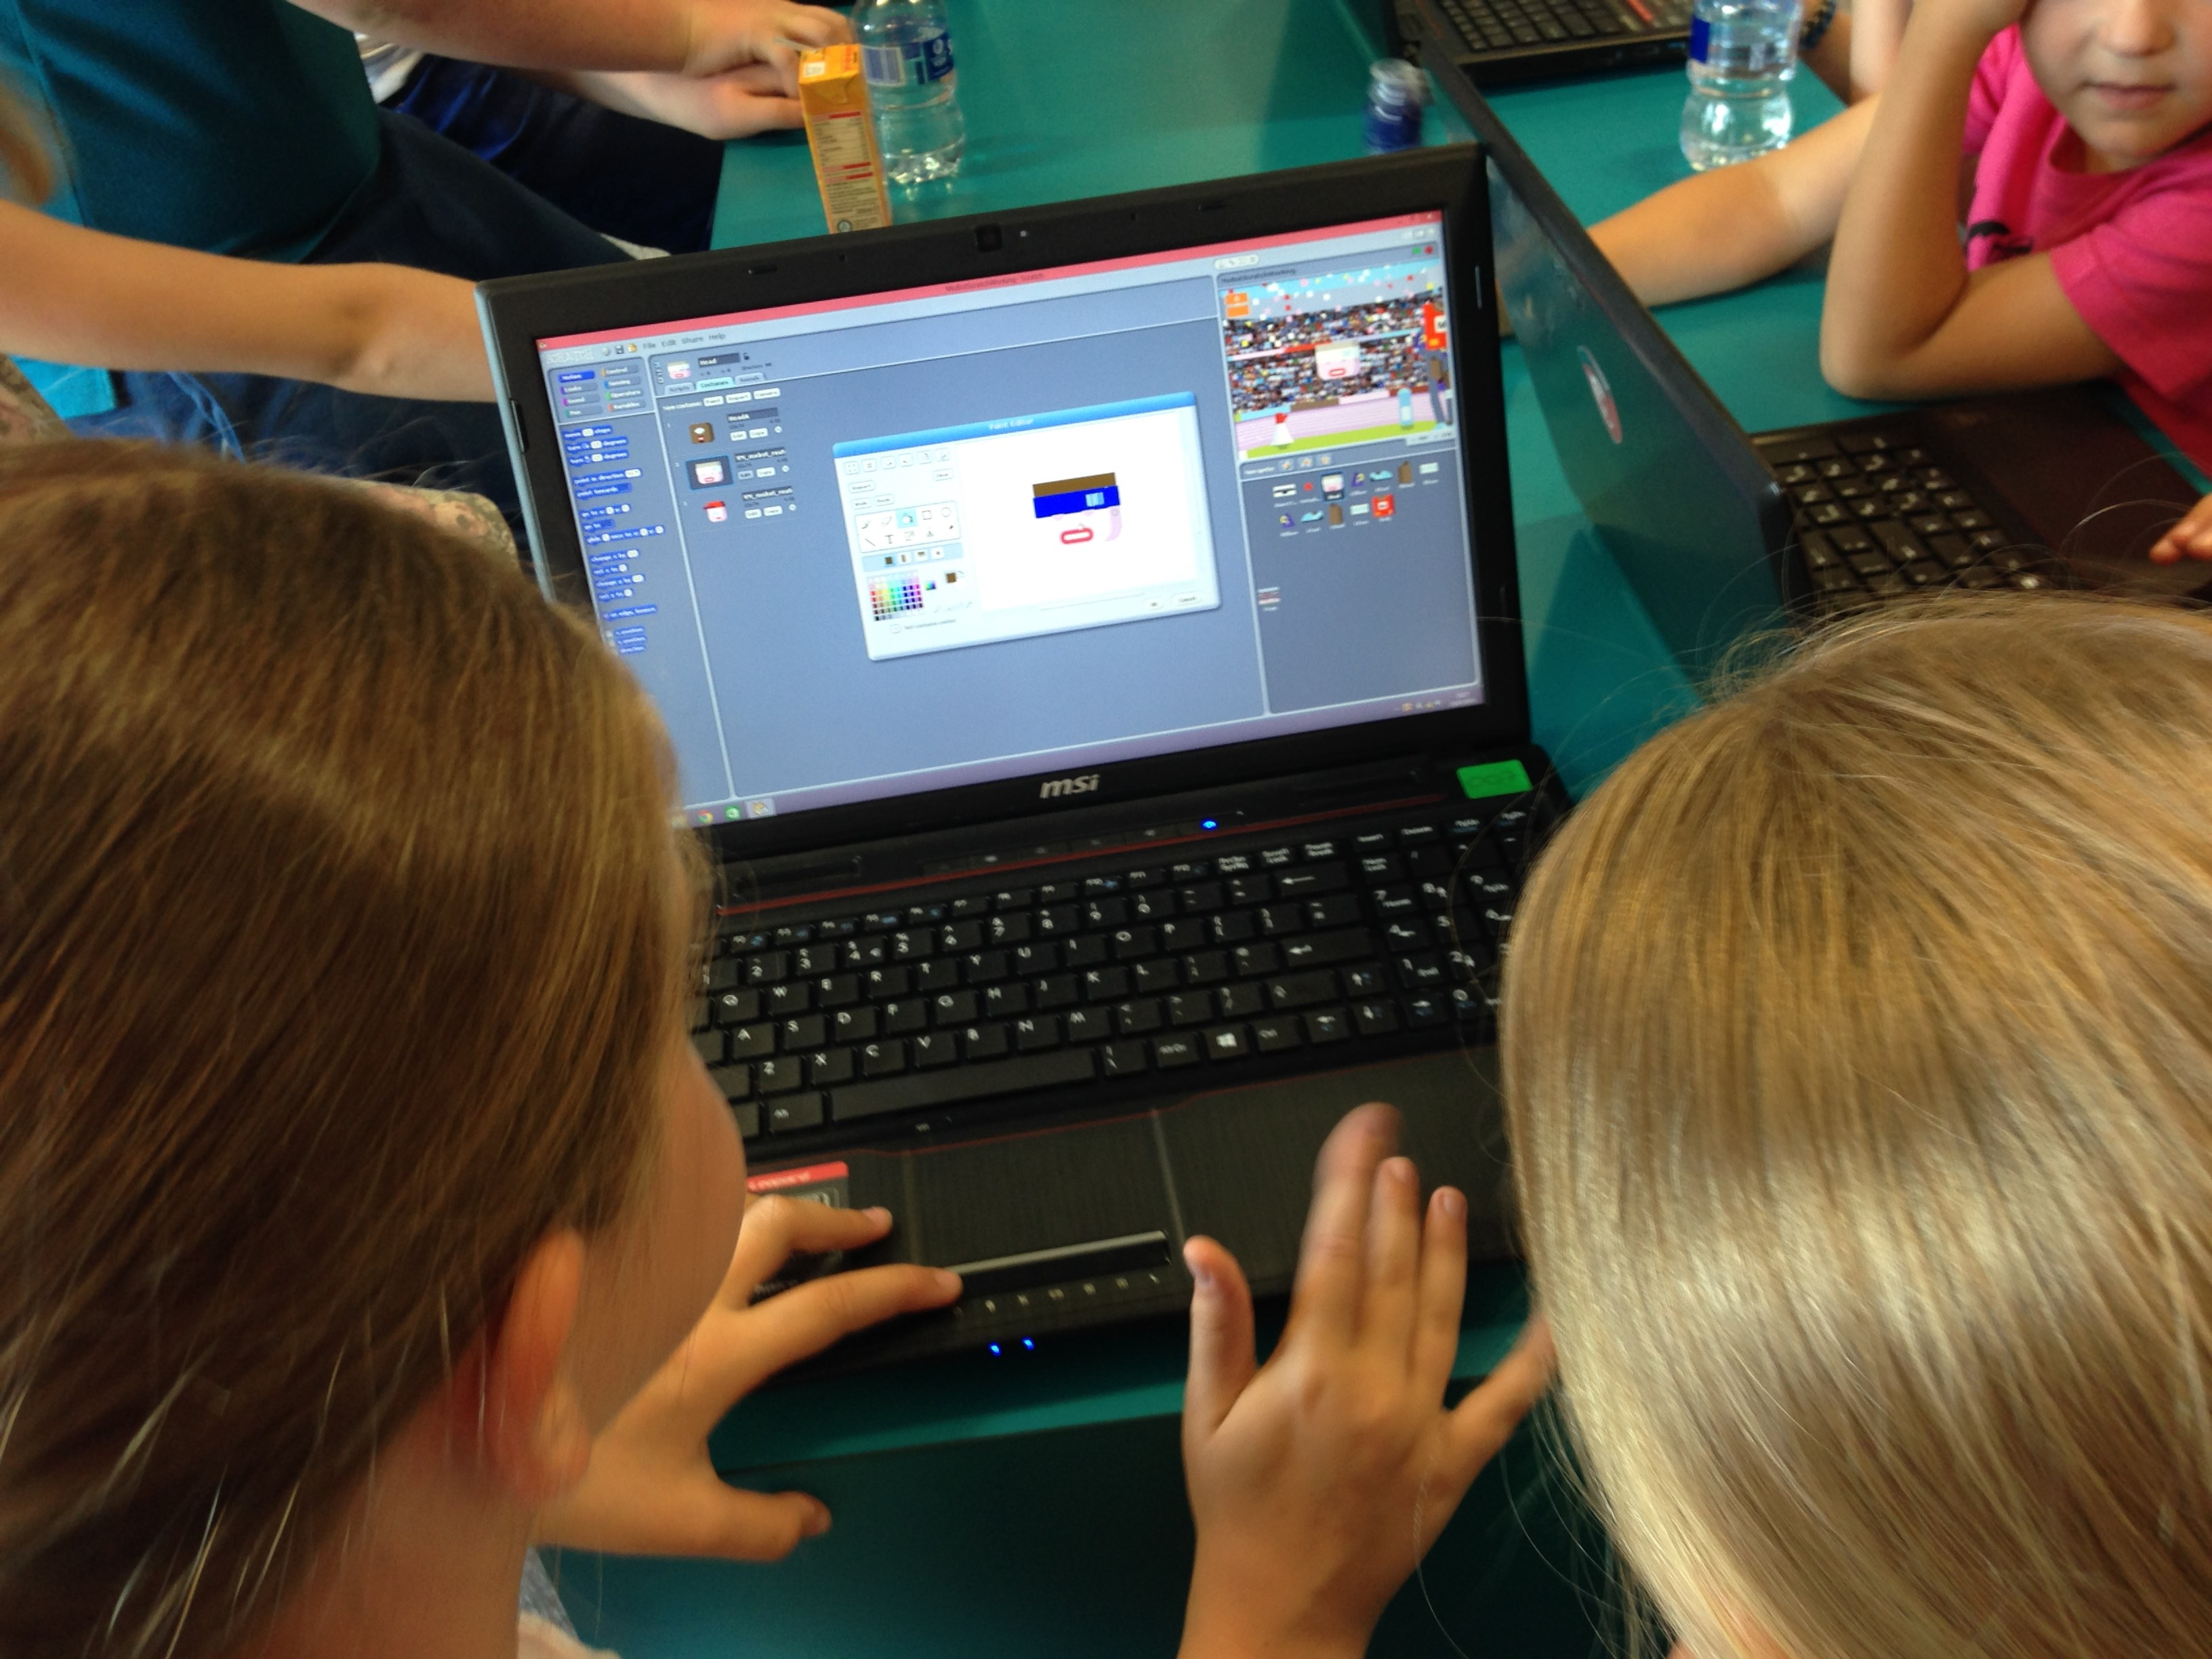 Children having a go at coding on a laptop during a library taster session in Glasgow, September 2014, enabled by the installation of WiFi.